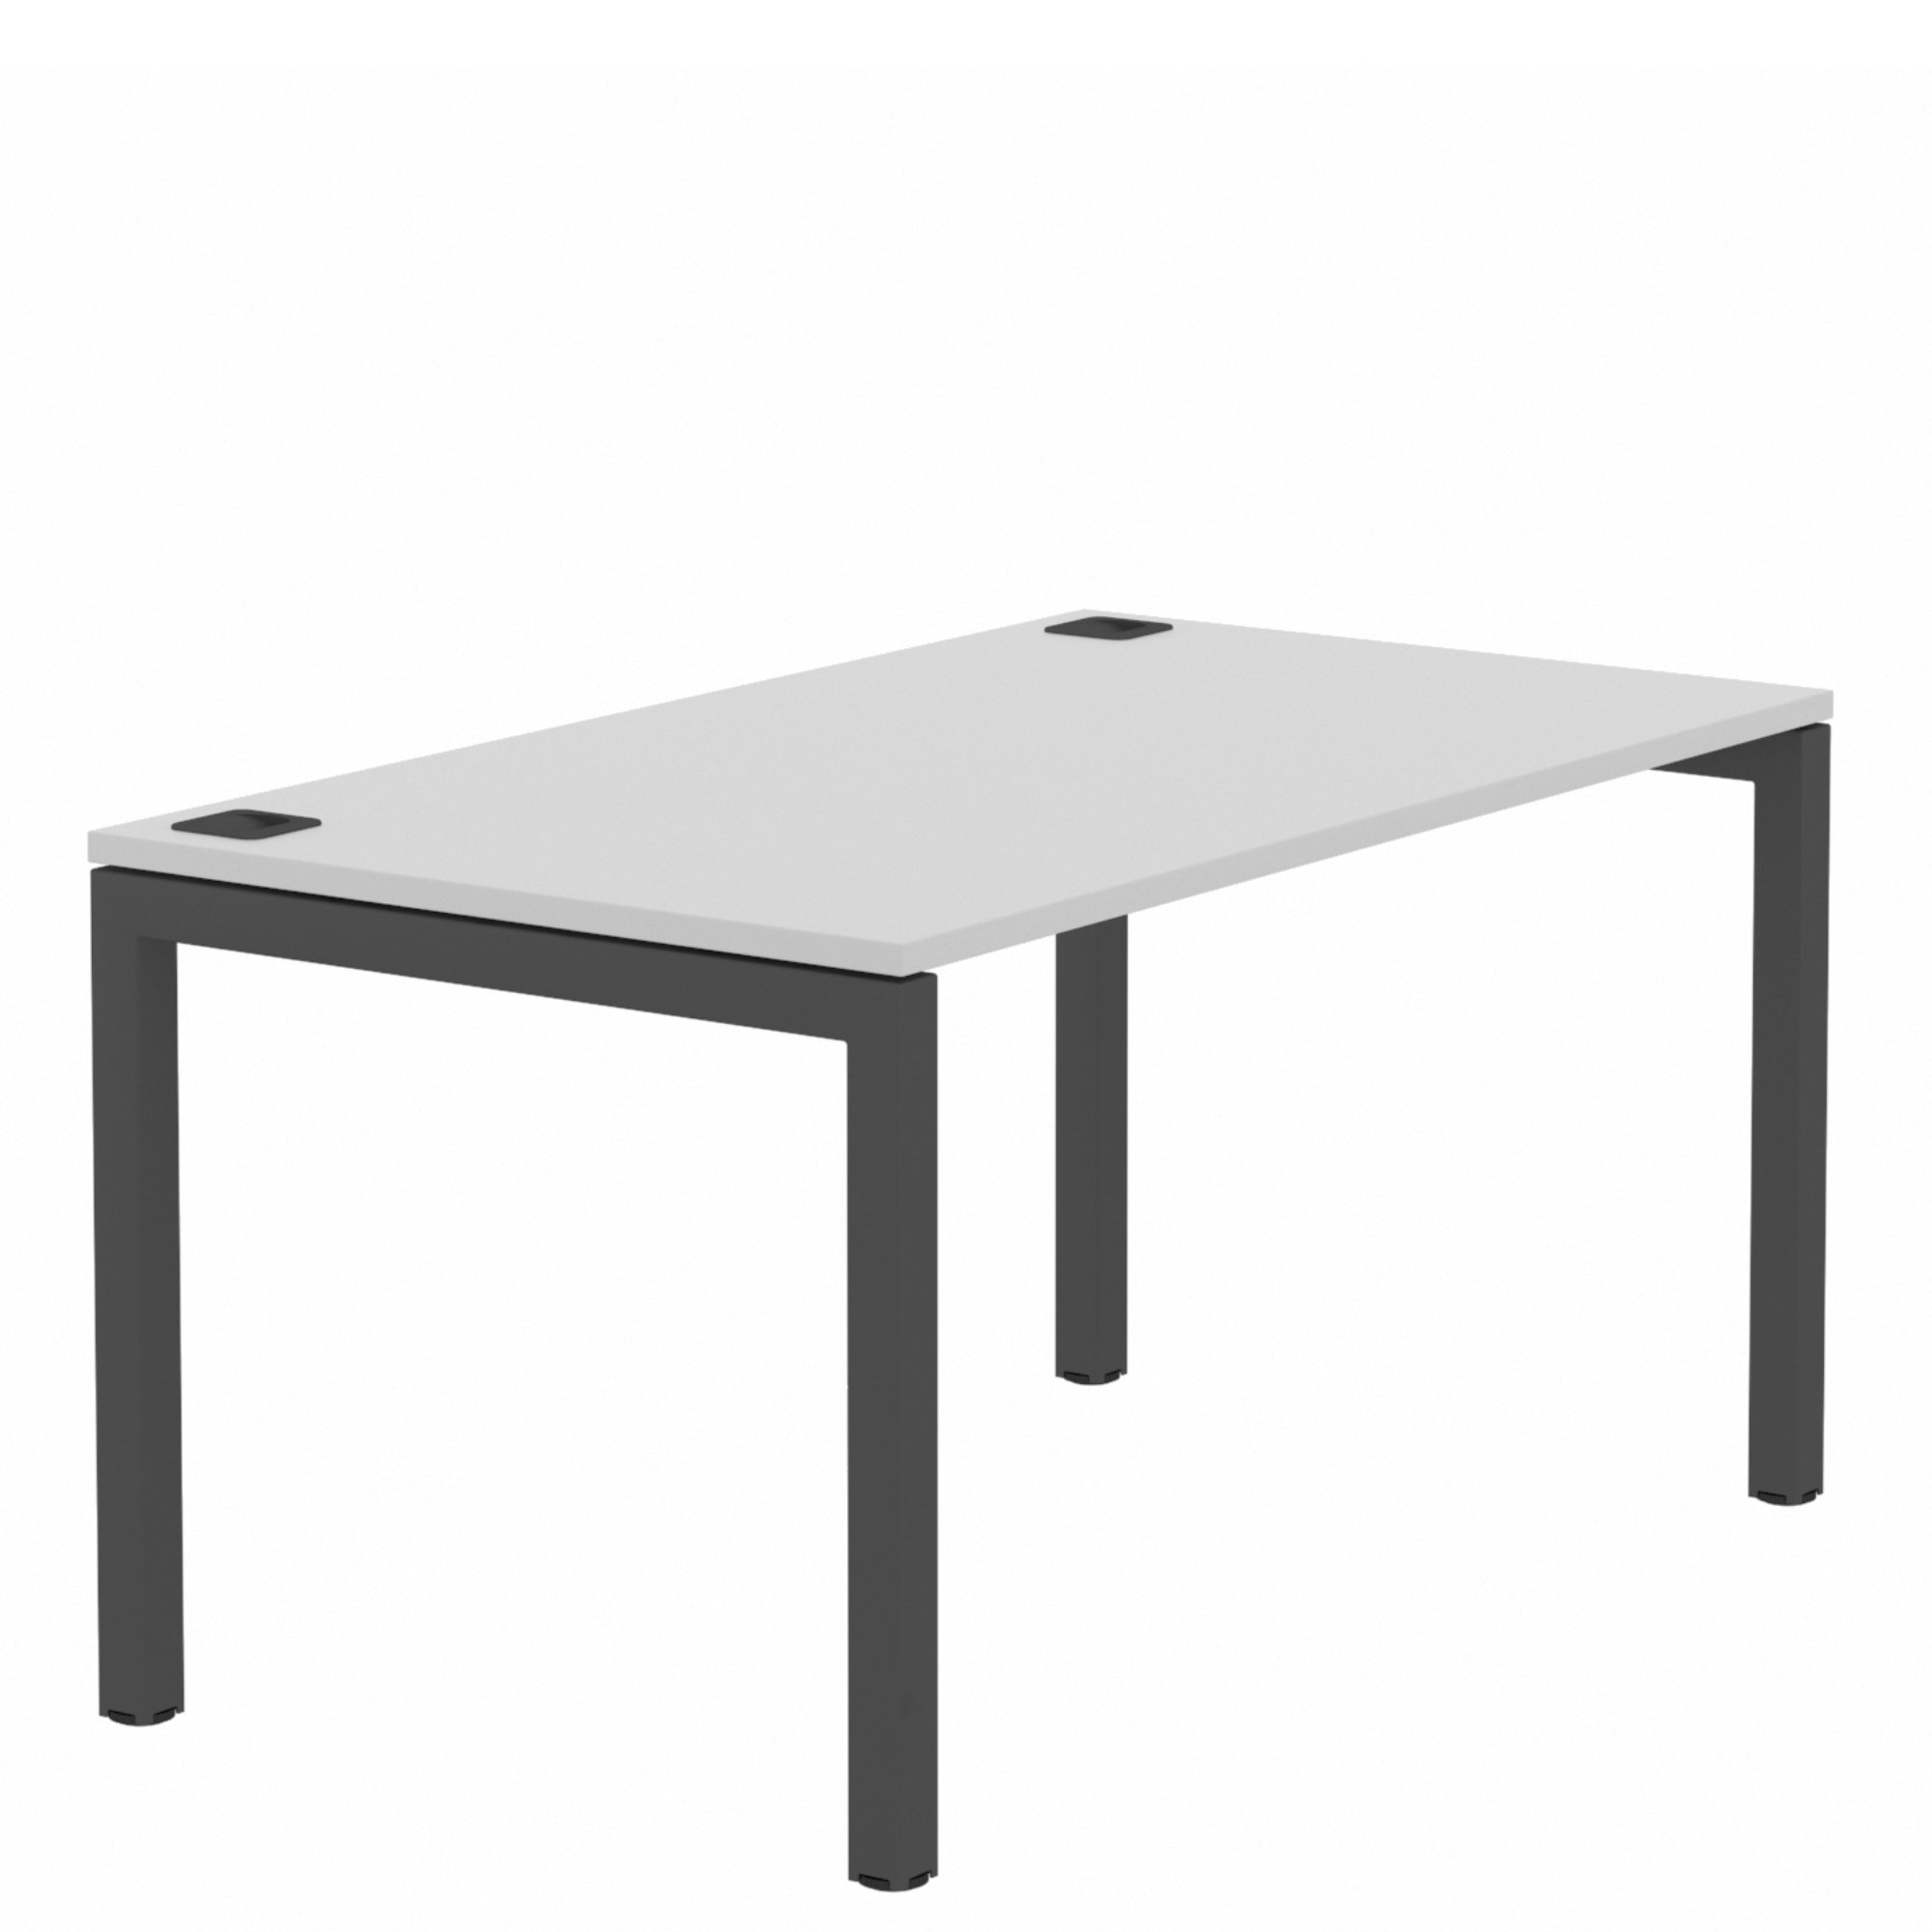 Elite Office Matrix Desk 1800mm Grey MX with Grey MX Edge